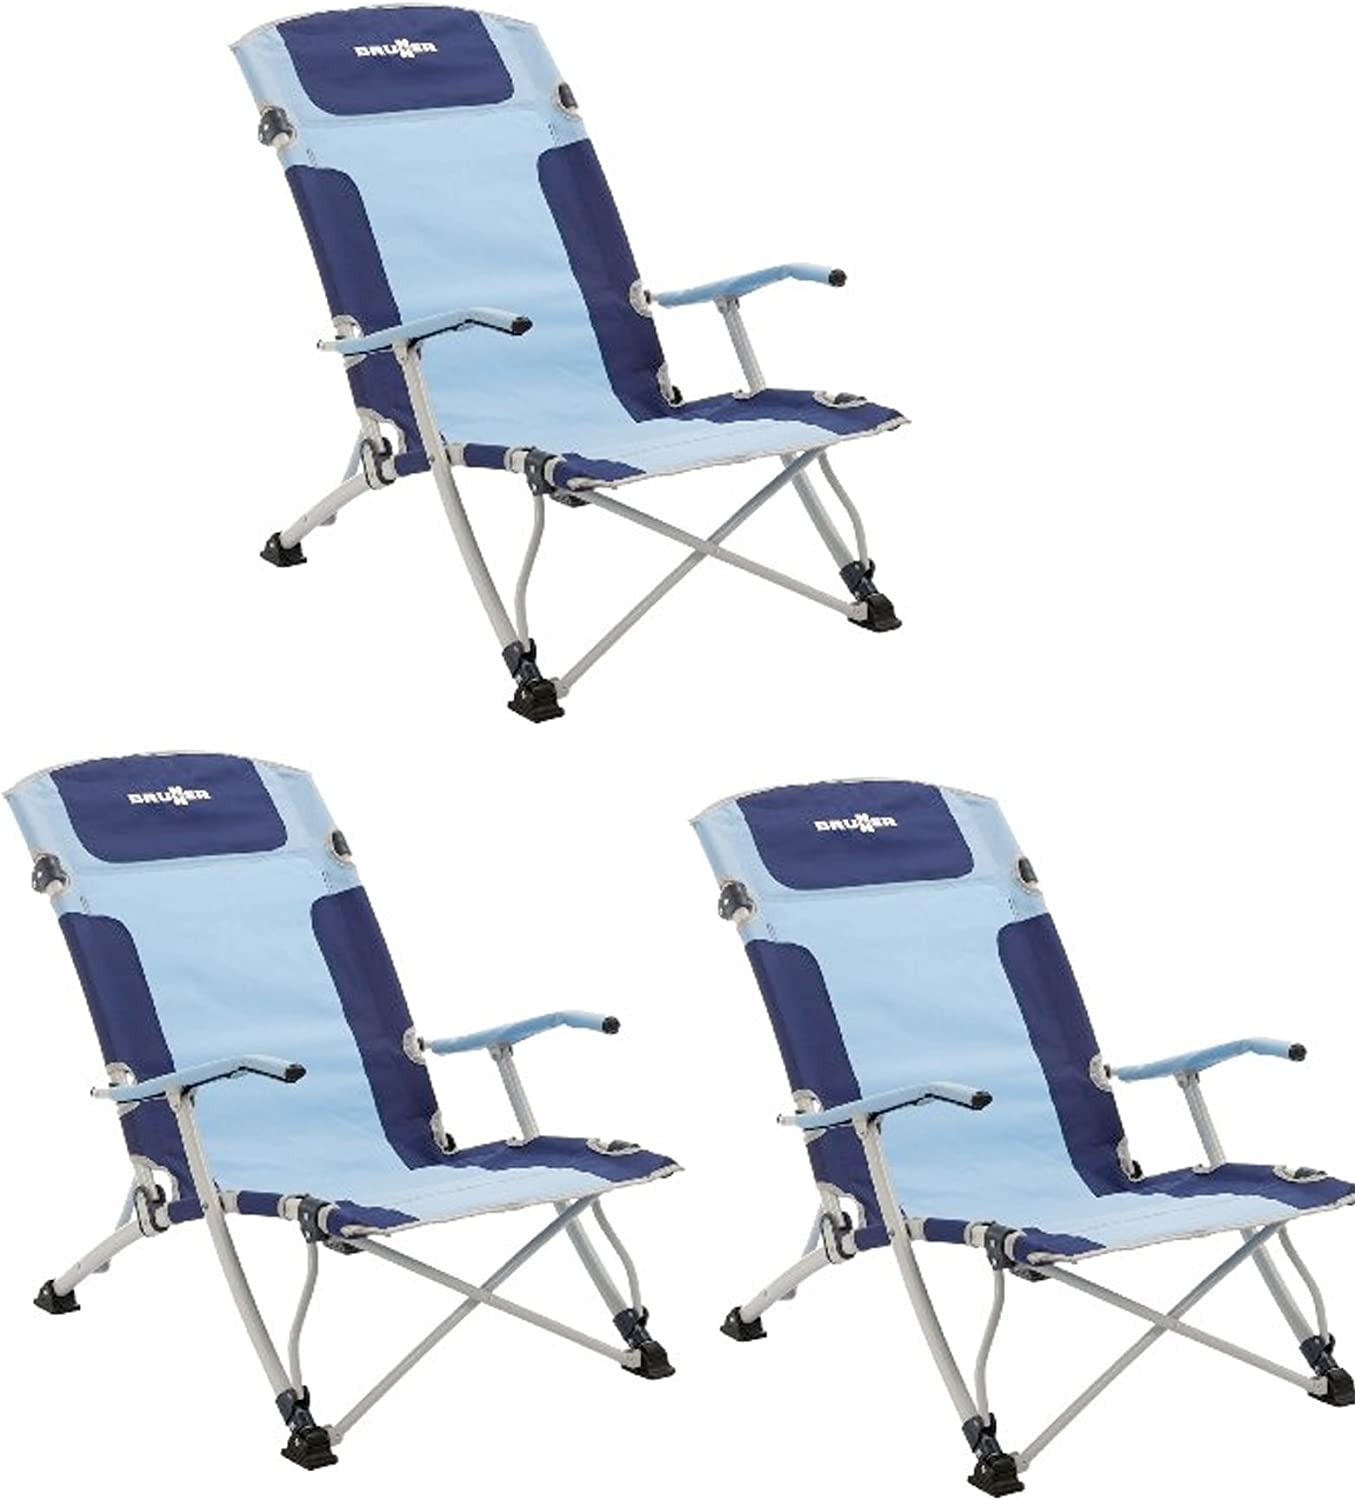 CHAISES BASSE CAMPING - Chaise de plage Brunner Camping Bula XL